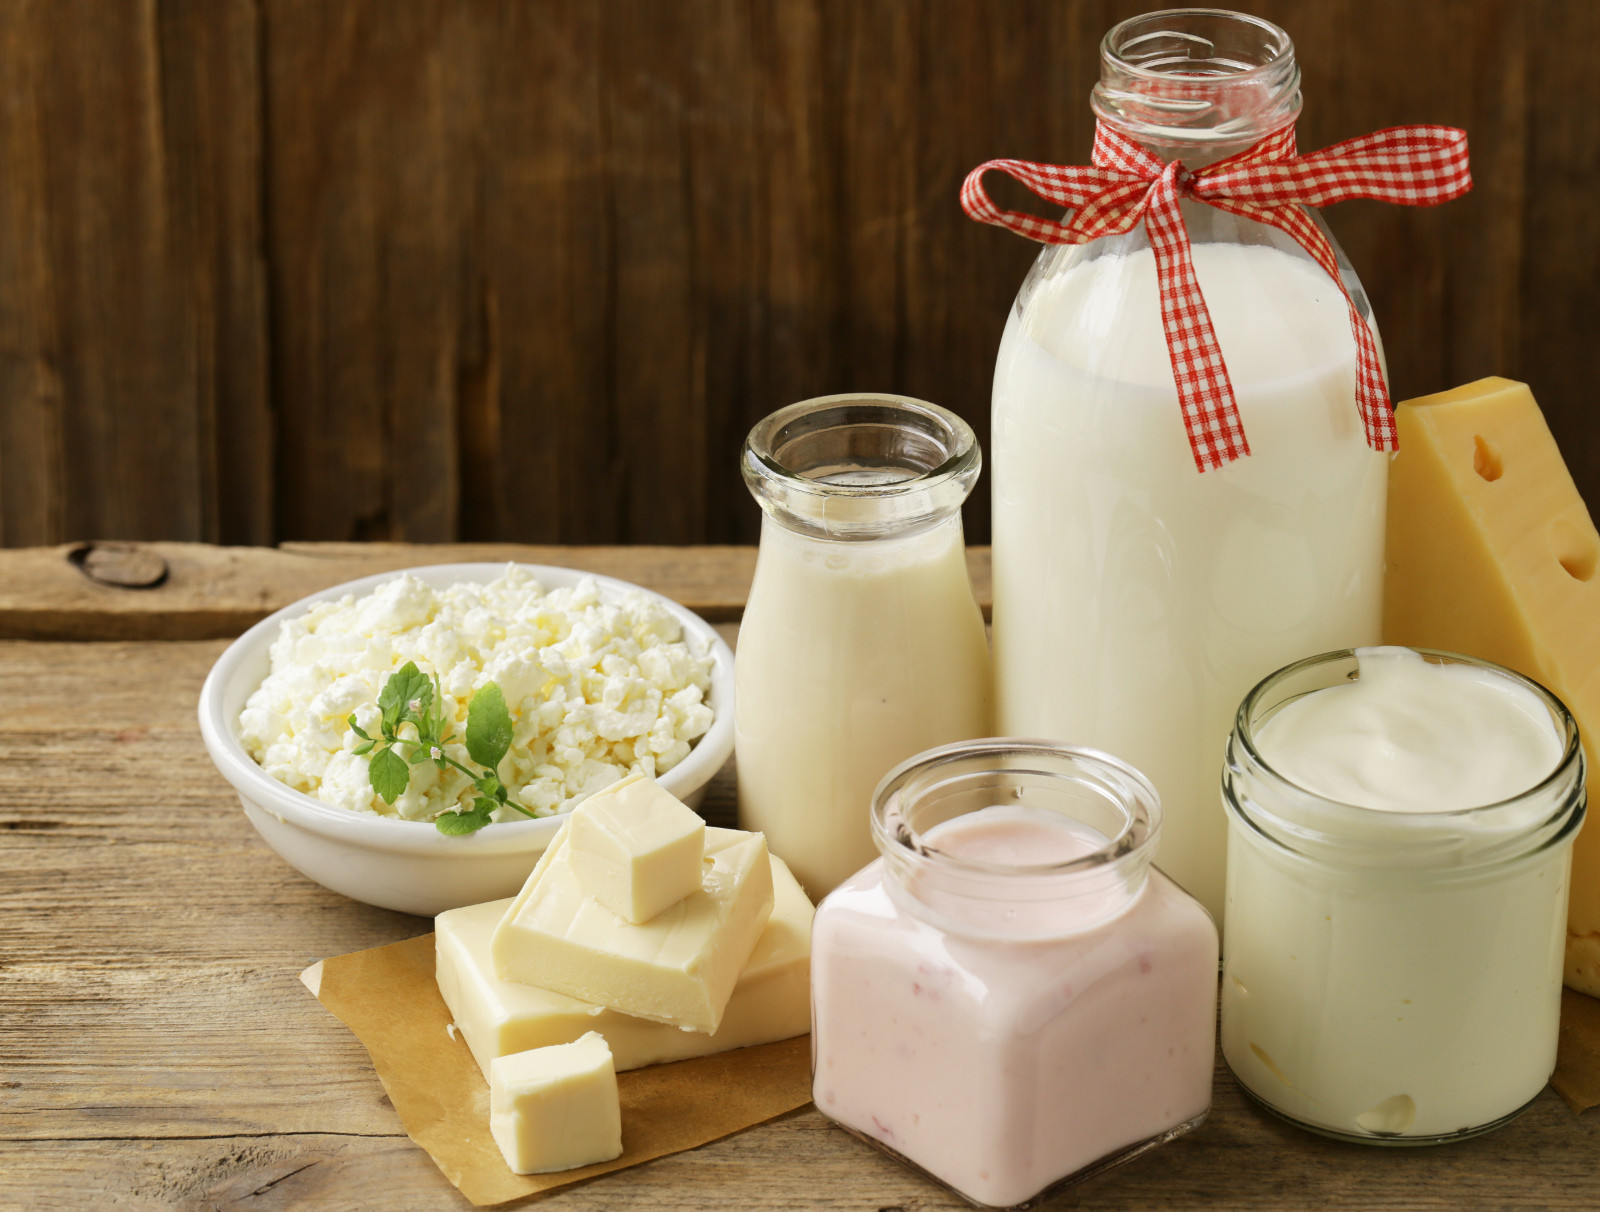 The Truth Behind The Health Claims Of Dairy Products